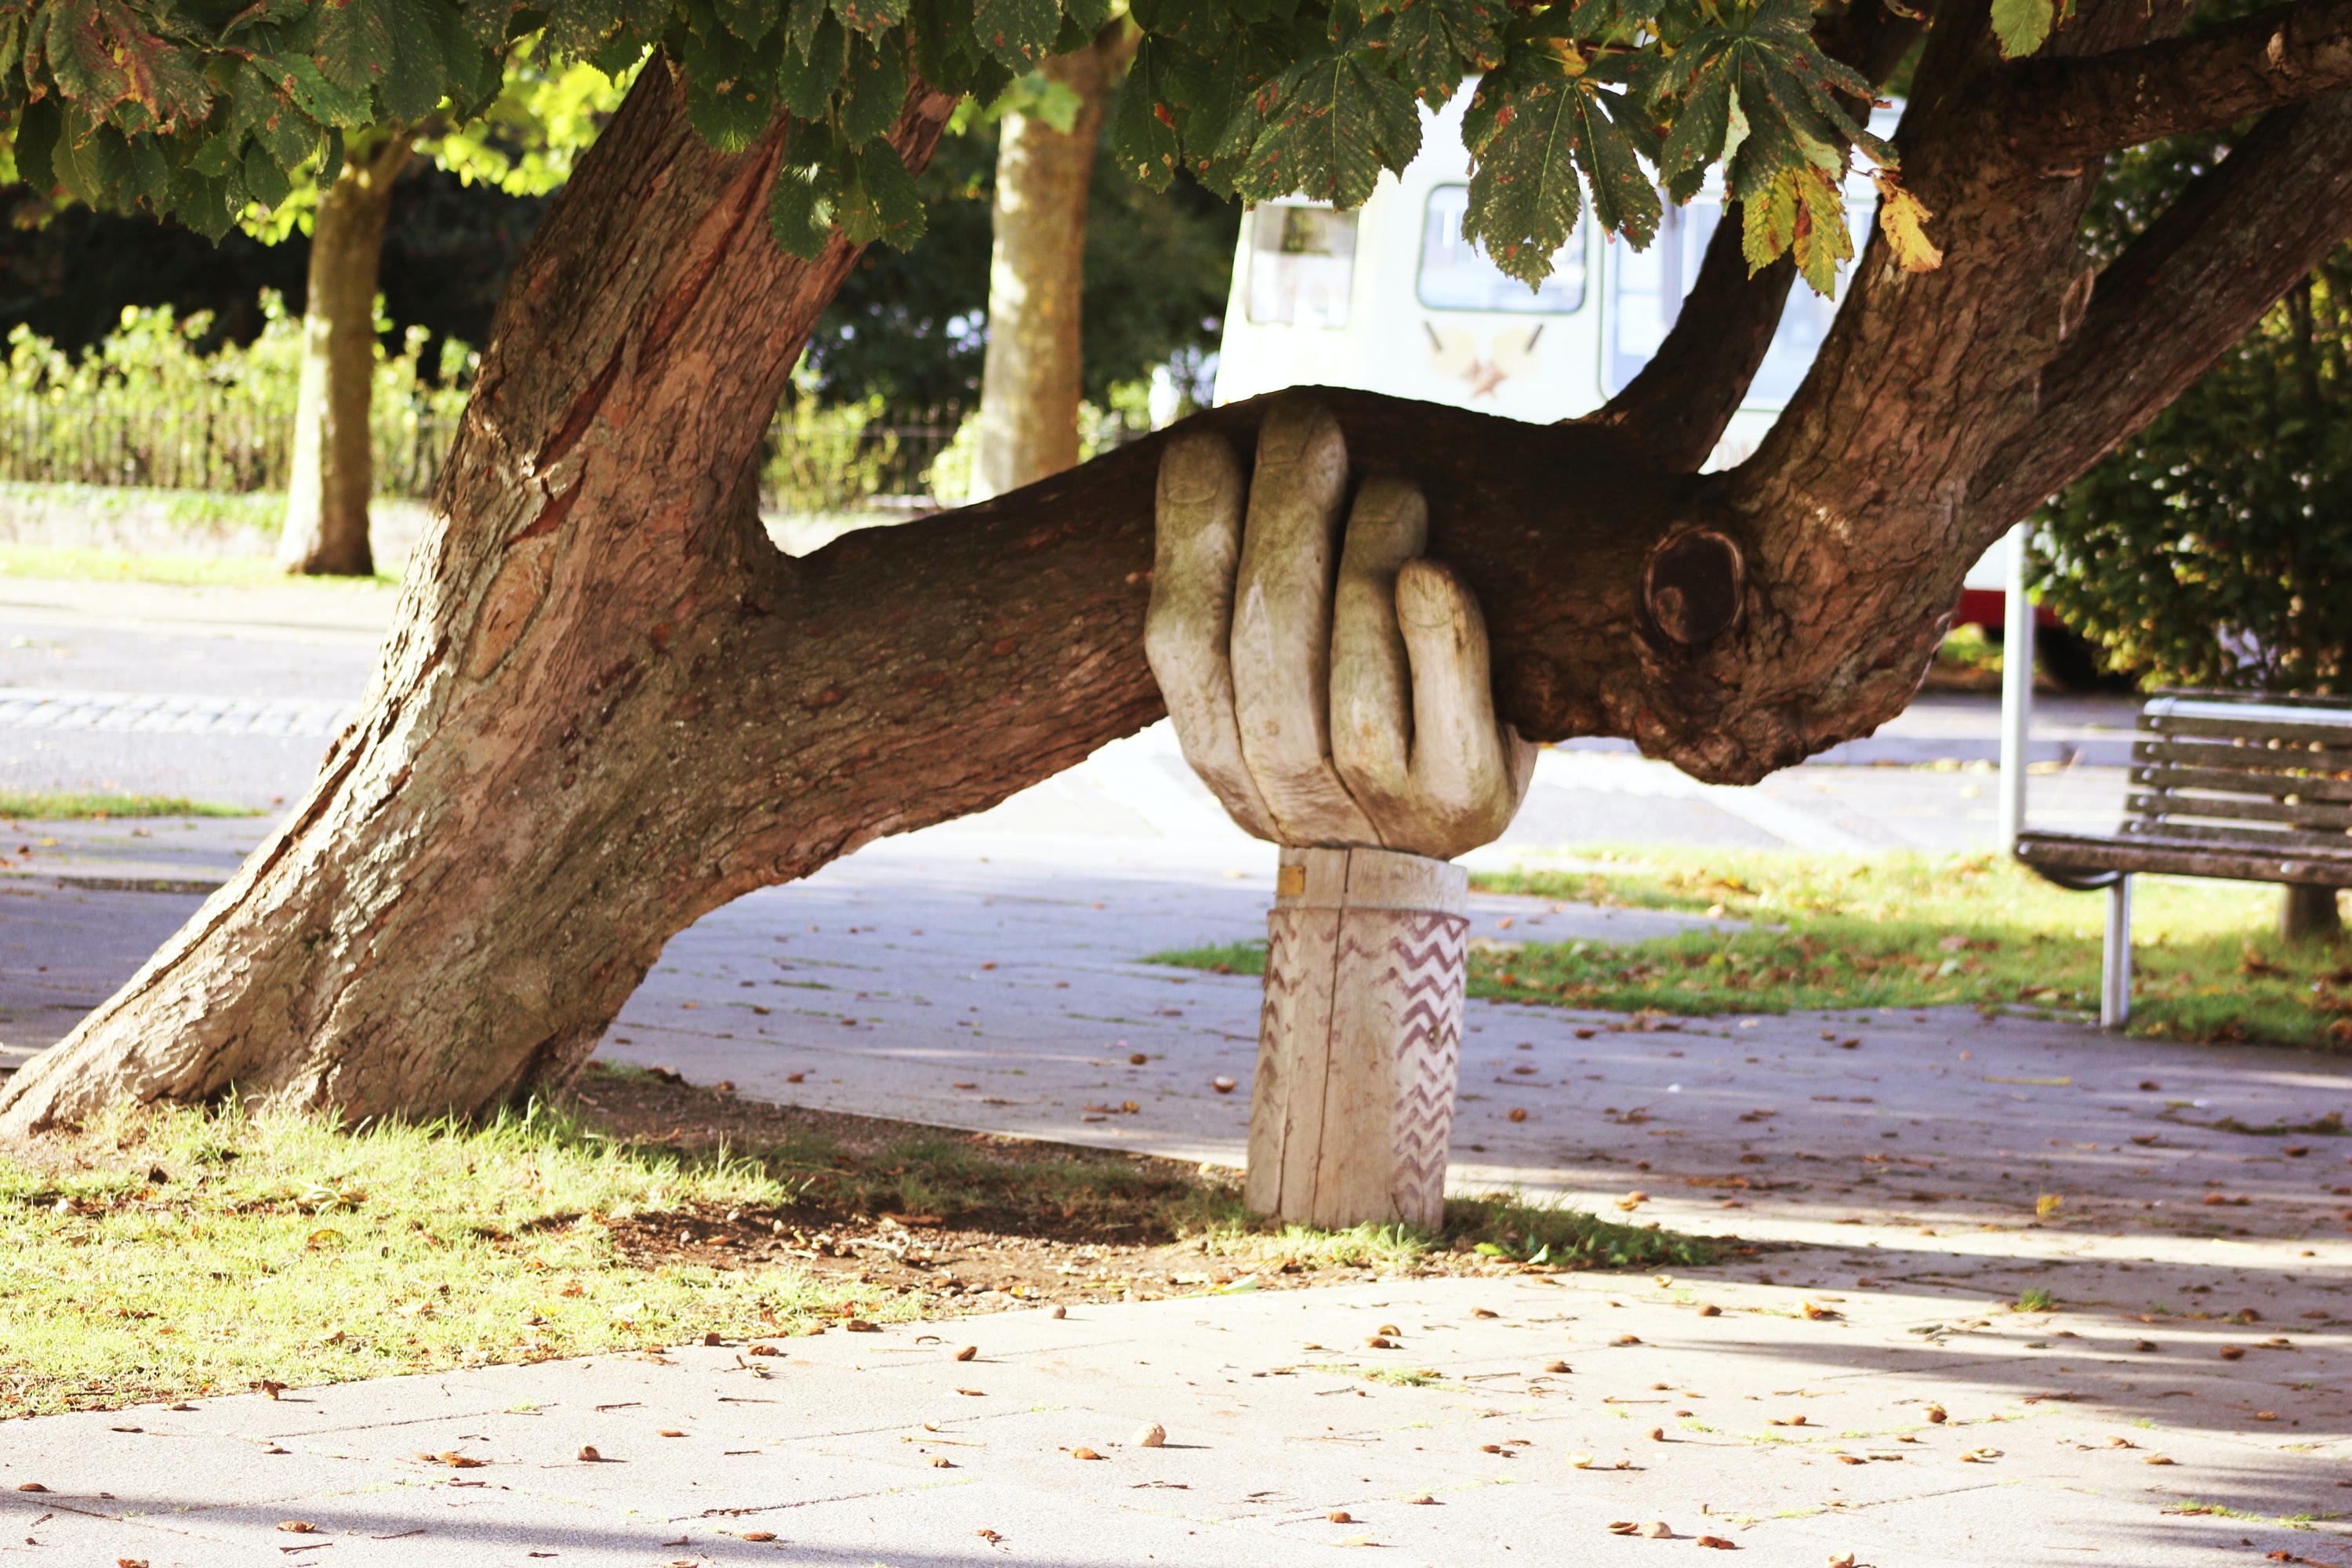 giant tree branch being held up by a wooden carved hand sculpture